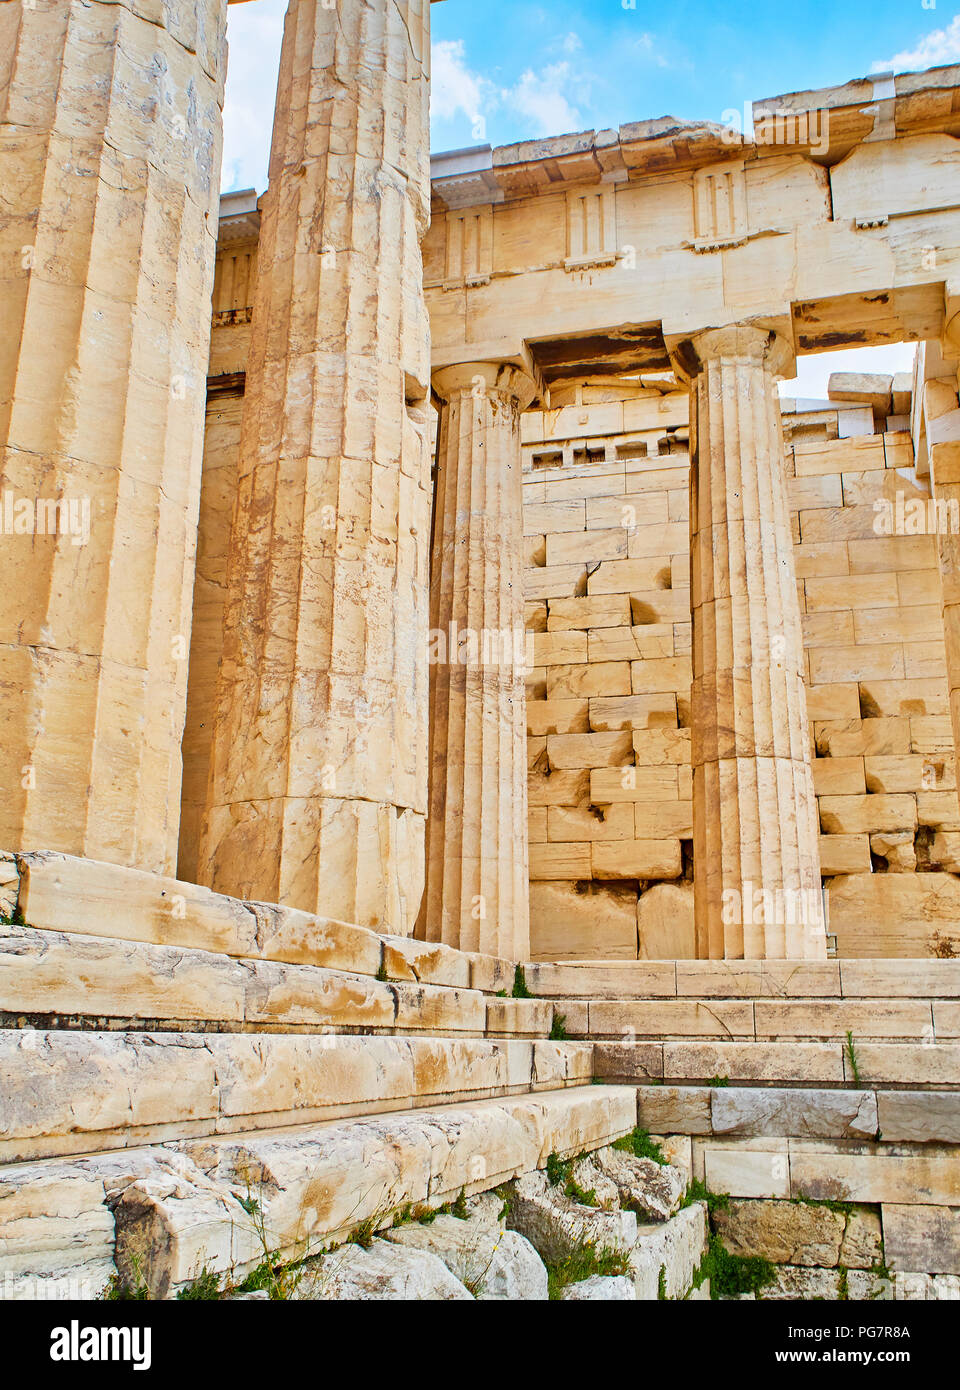 Doric columns and Entabulature of the western facade of Propylaea, the ancient gateway to the Athenian Acropolis. Athens. Attica, Greece. - Stock Image